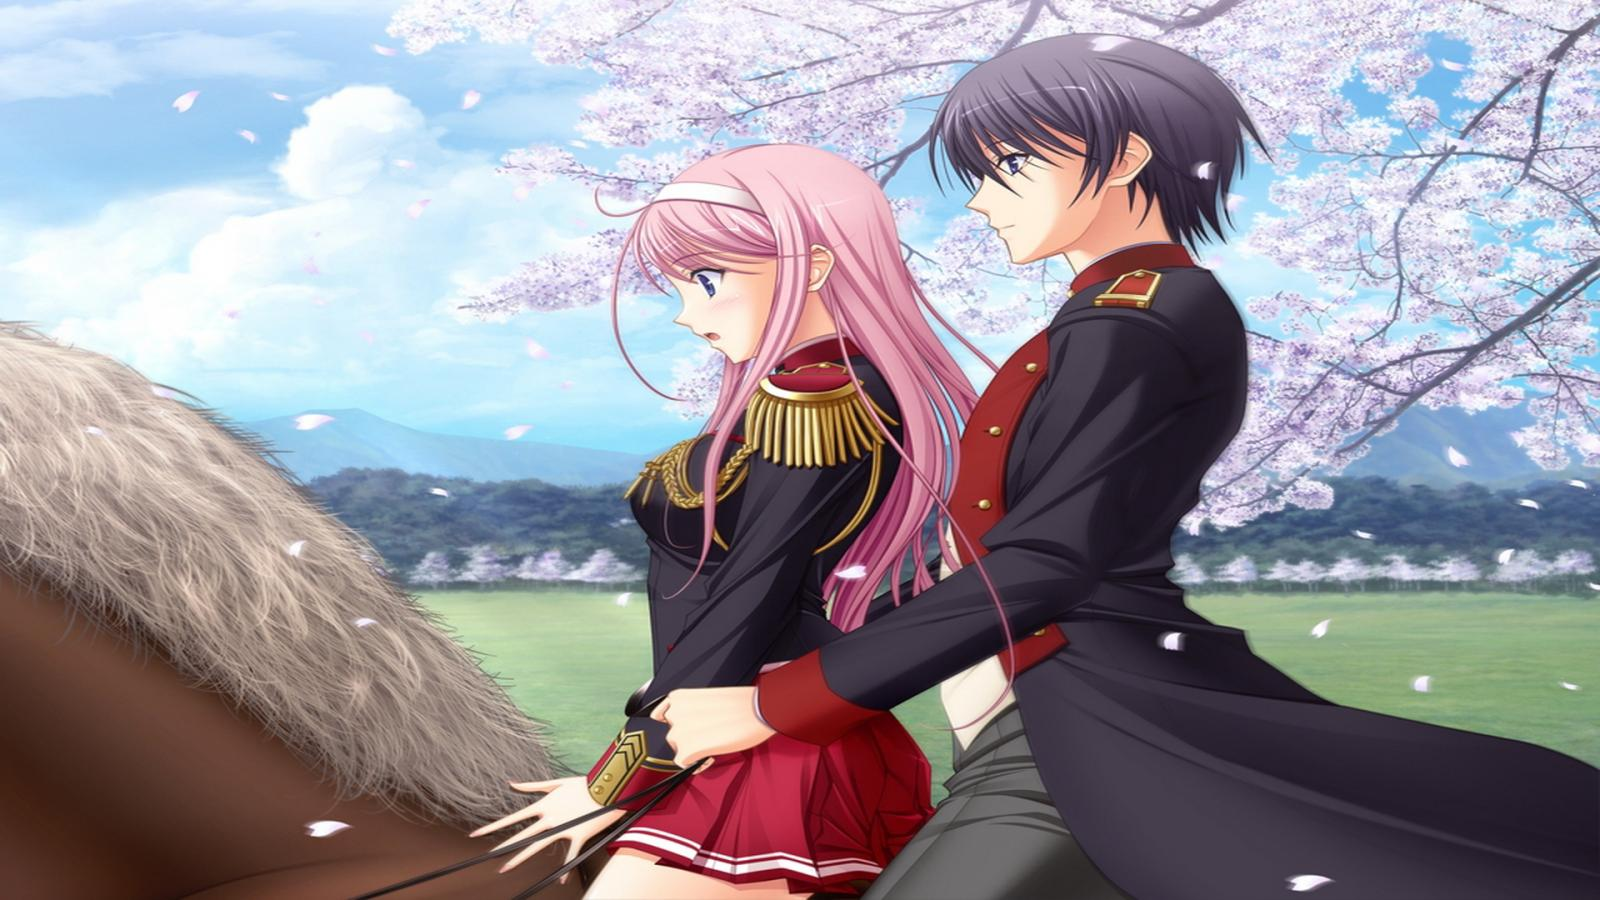 Anime Boy And Girl In Love Wallpaper : Wallpaper Anime Love - WallpaperSafari